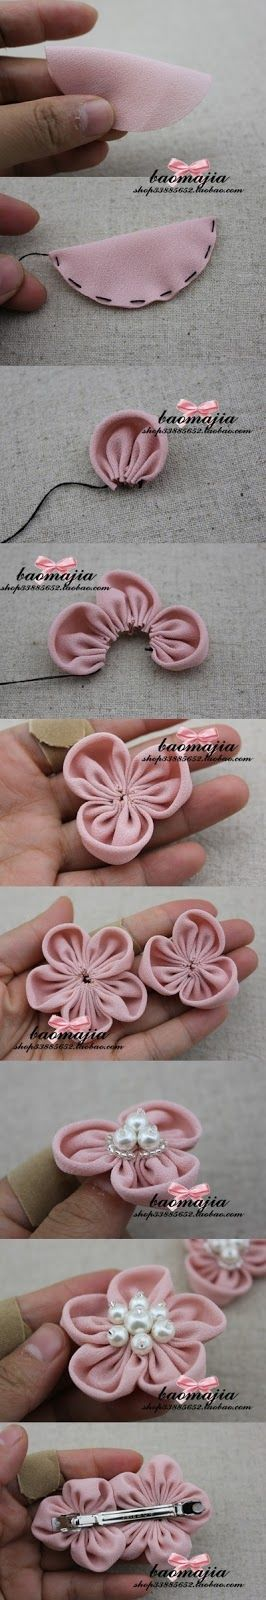 Cute and easy DIY fabric flower